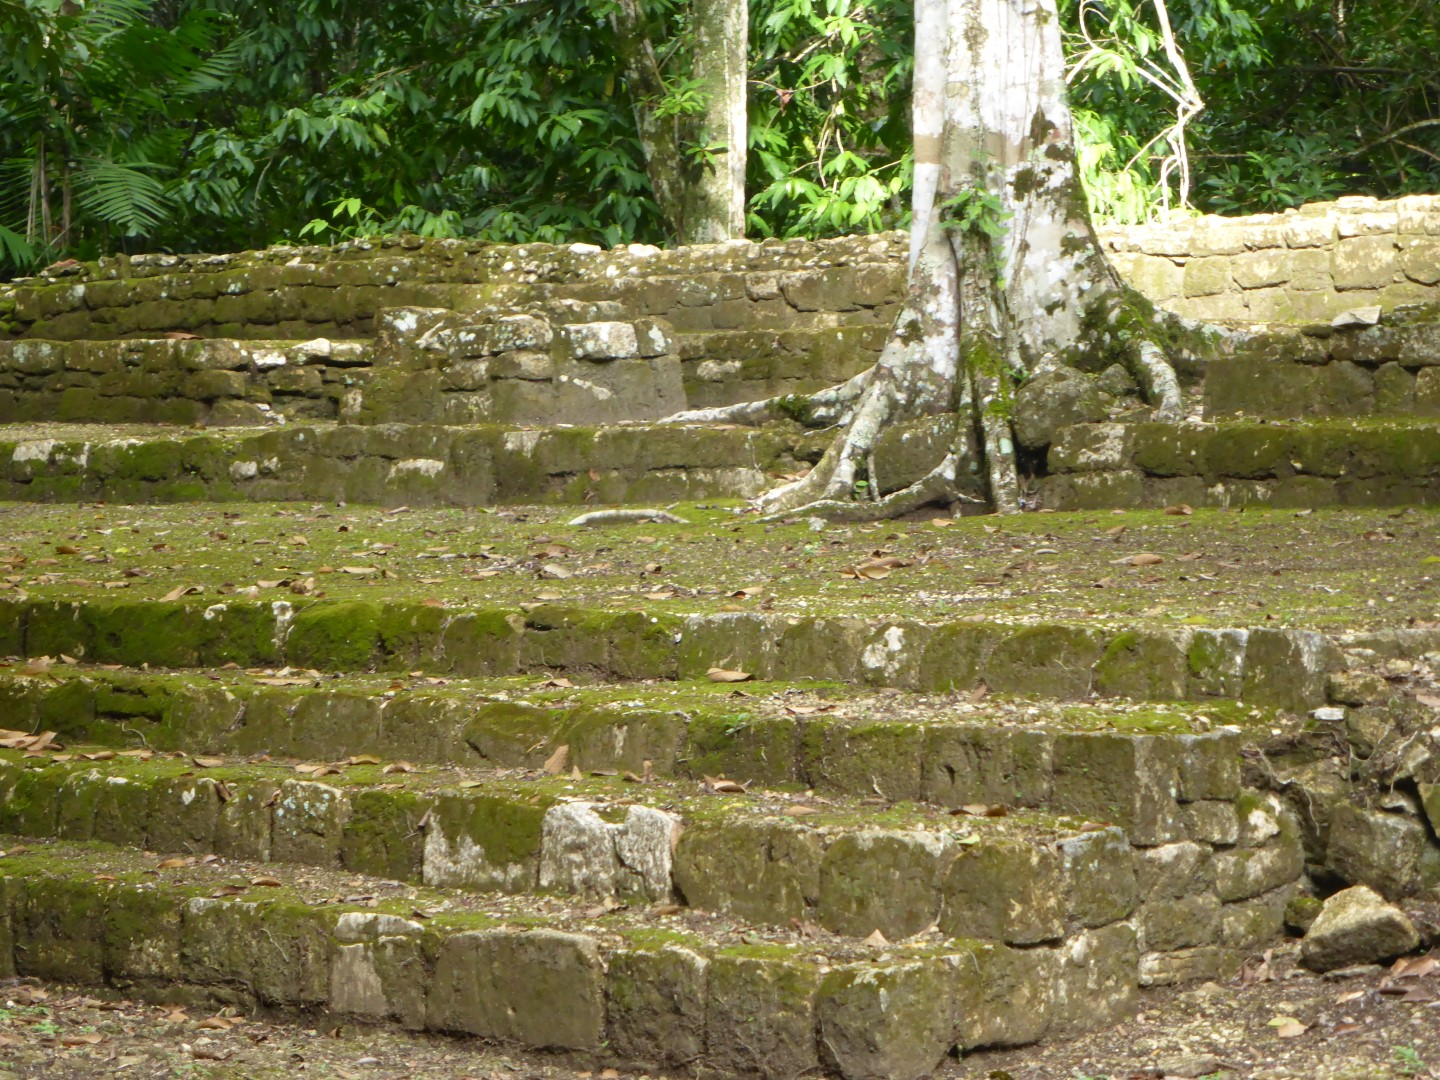 Tree growing on Mayan ruins at Ceibal, Guatemala